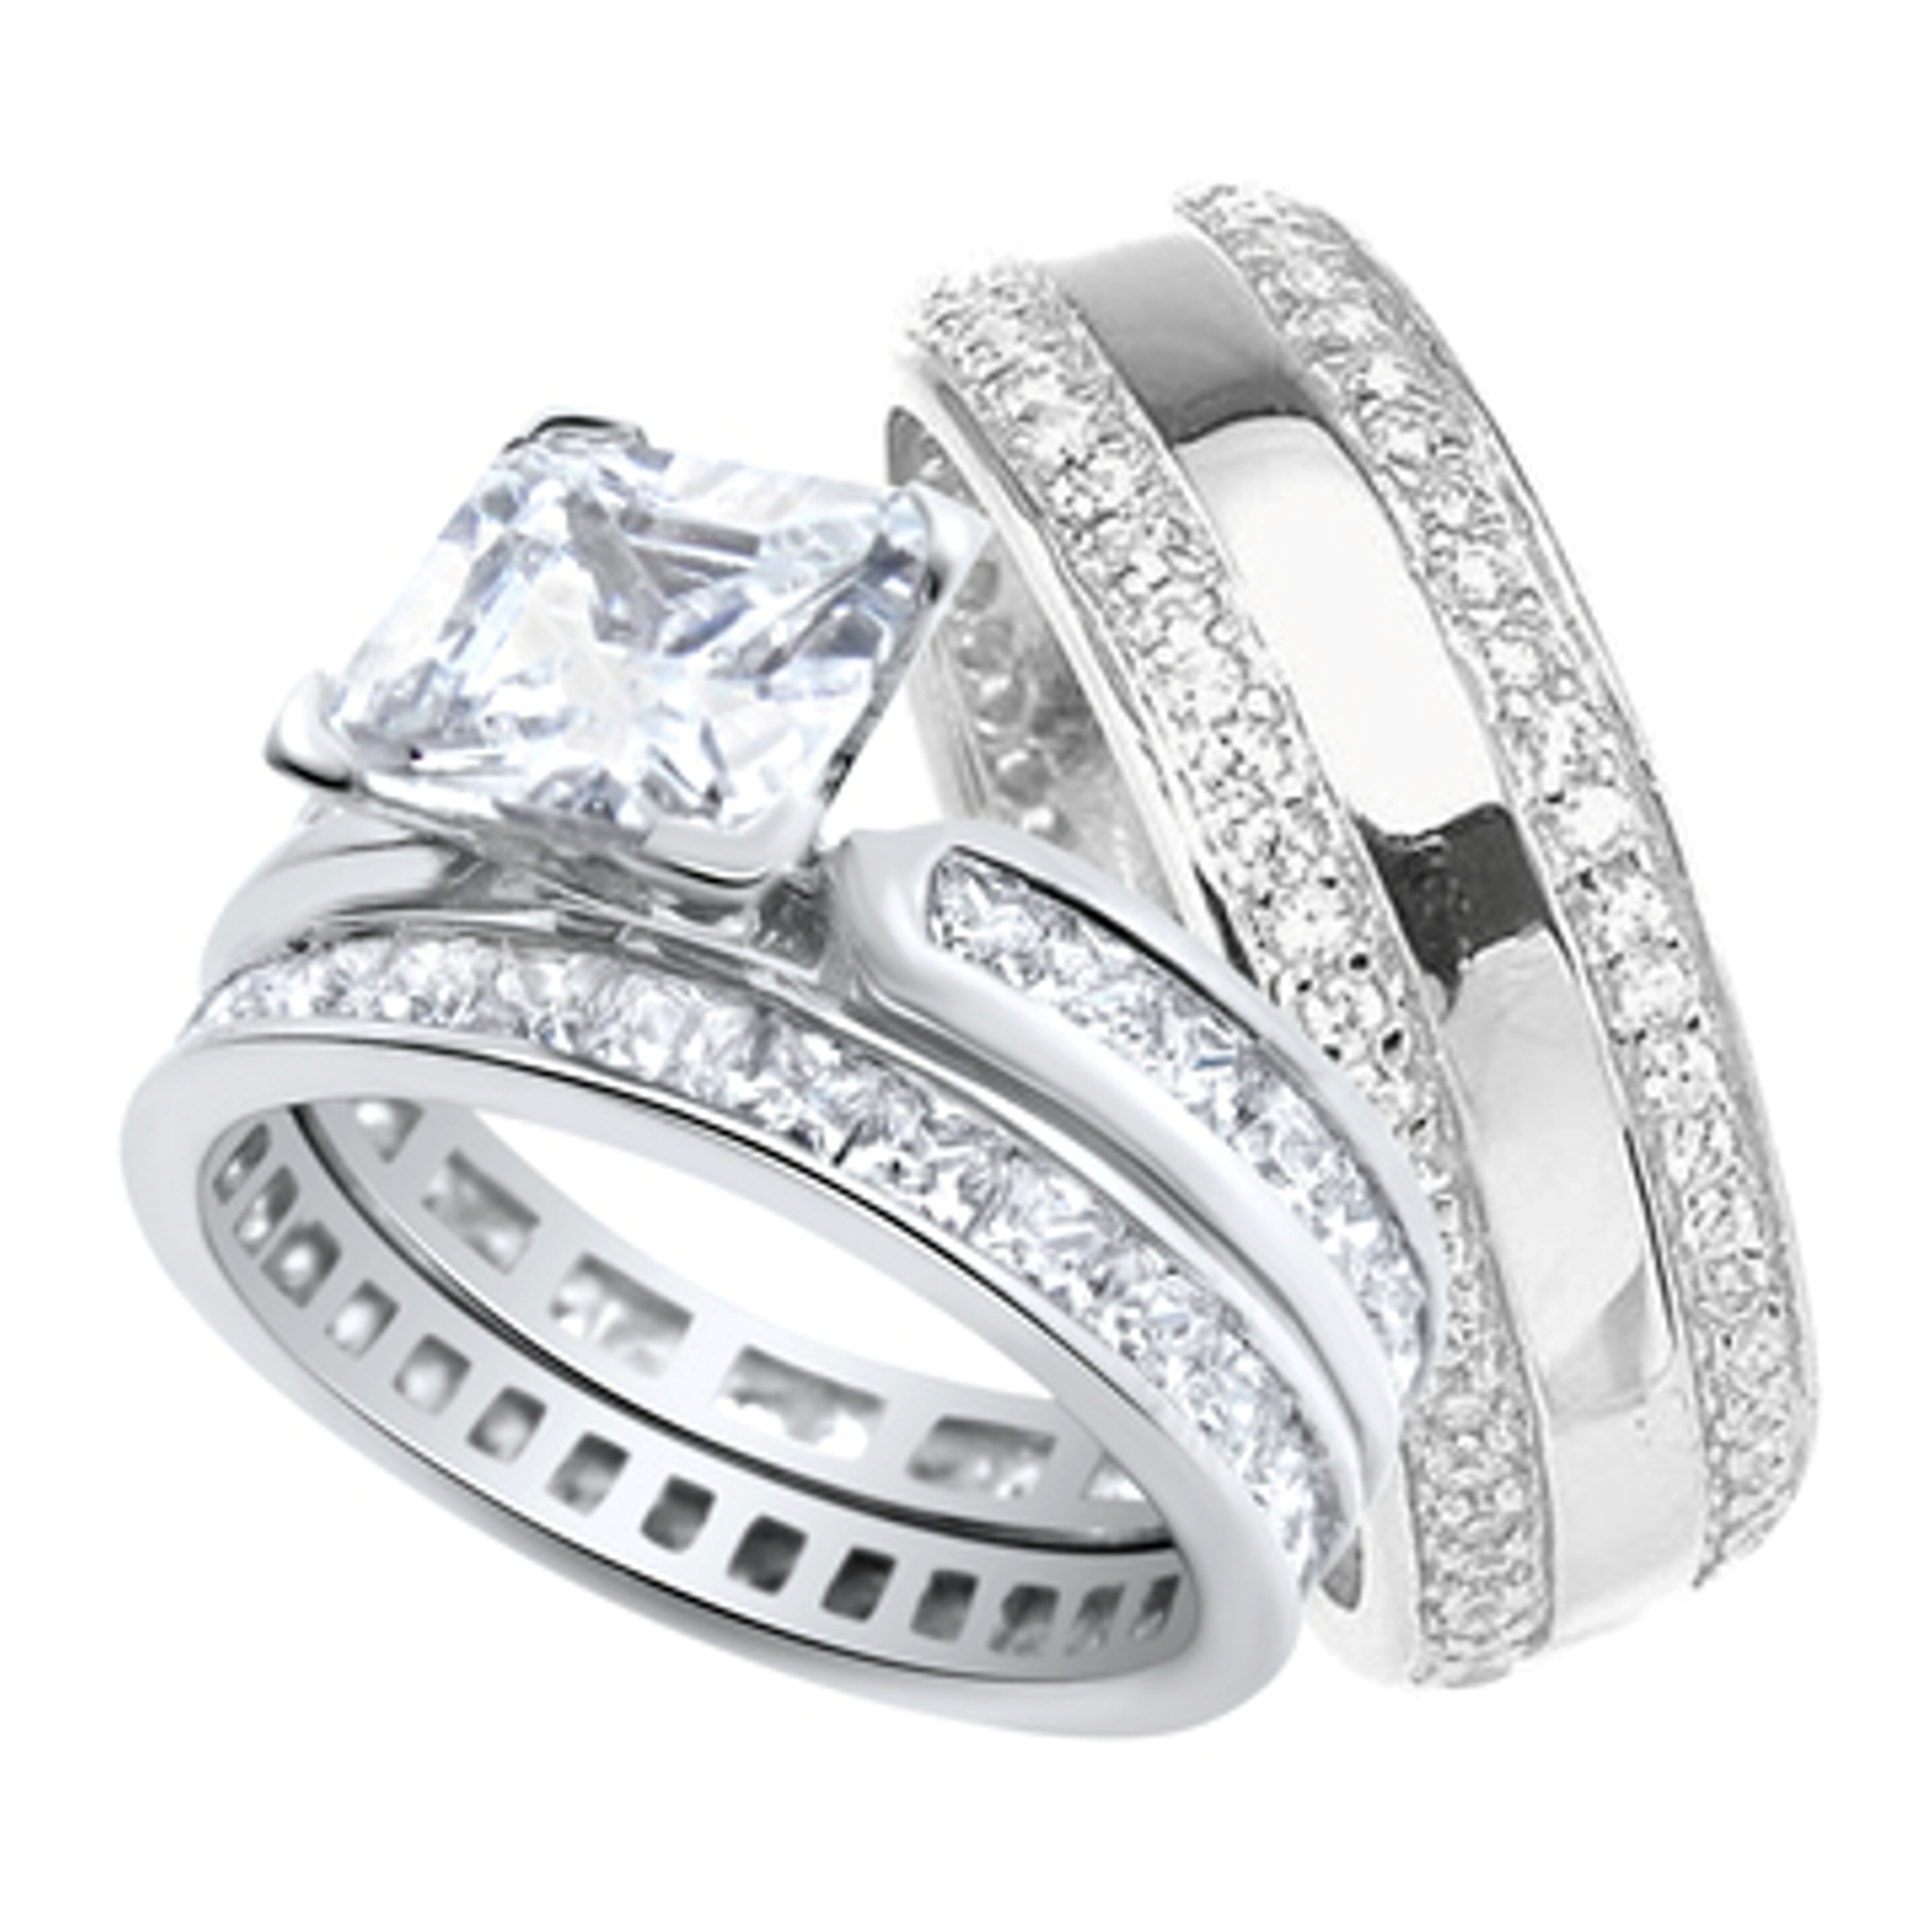 Perfect His And Hers Wedding Ring Set Matching Sterling Silver Anniversary Bands  For Him And Her (